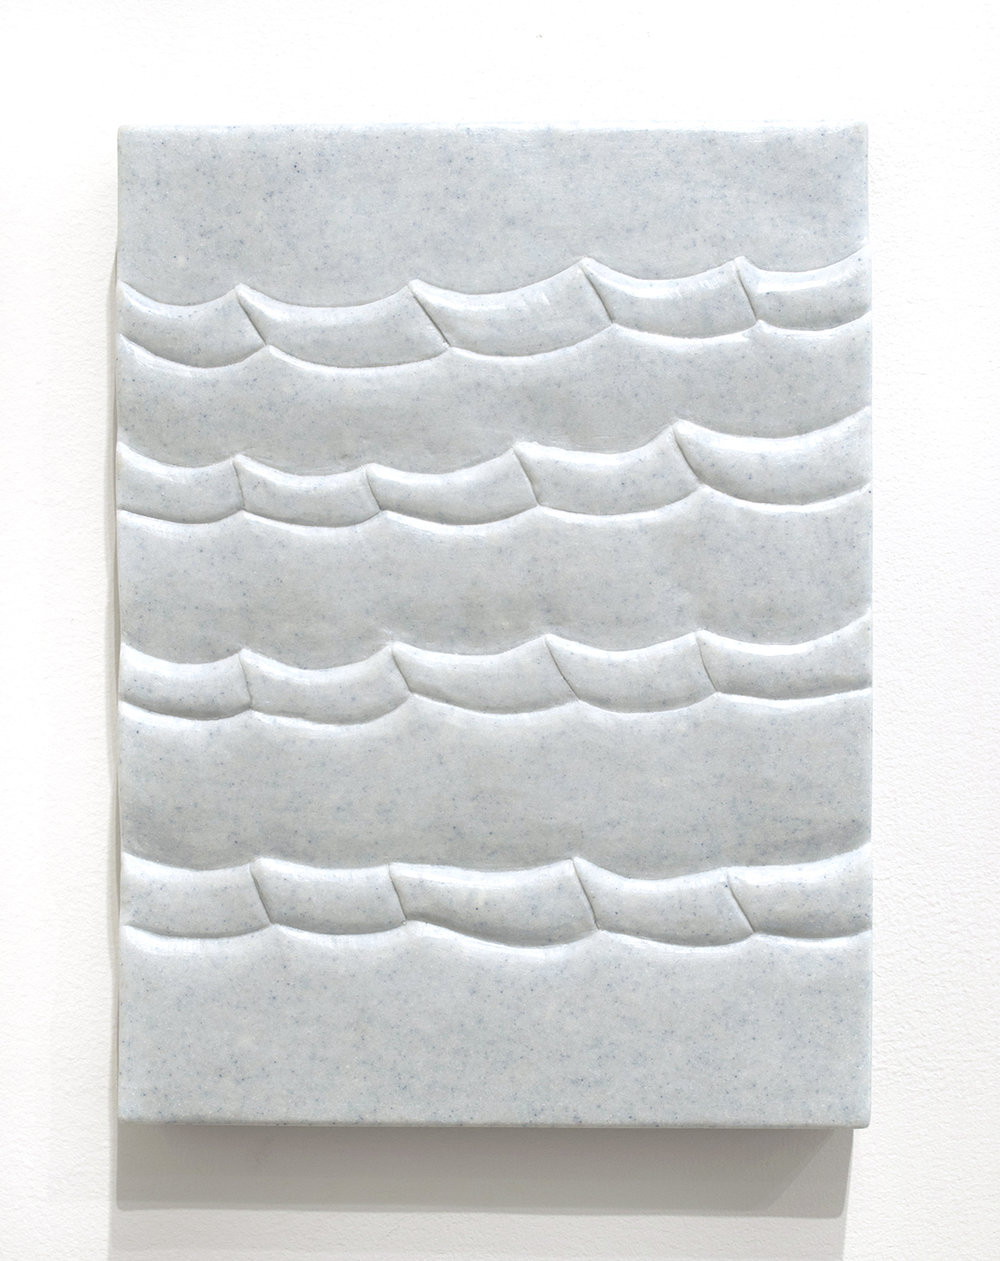 Sea Tablet (Galapagos),  2018  9 x 12 x 1.5 inches  Marble composite